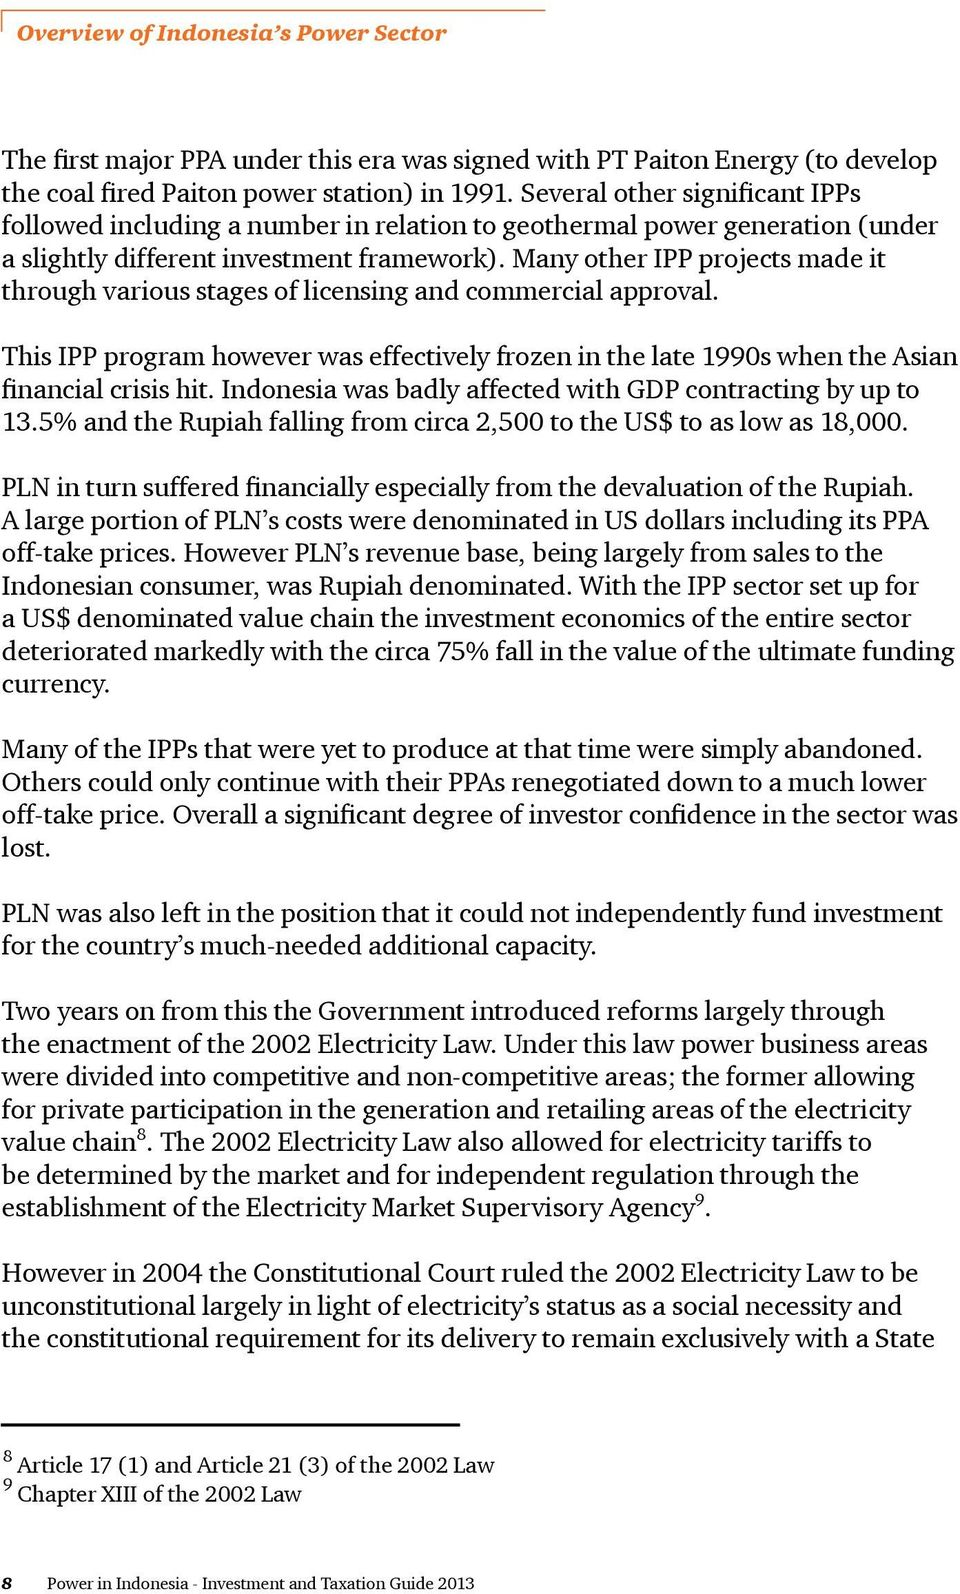 Many other IPP projects made it through various stages of licensing and commercial approval. This IPP program however was effectively frozen in the late 1990s when the Asian financial crisis hit.